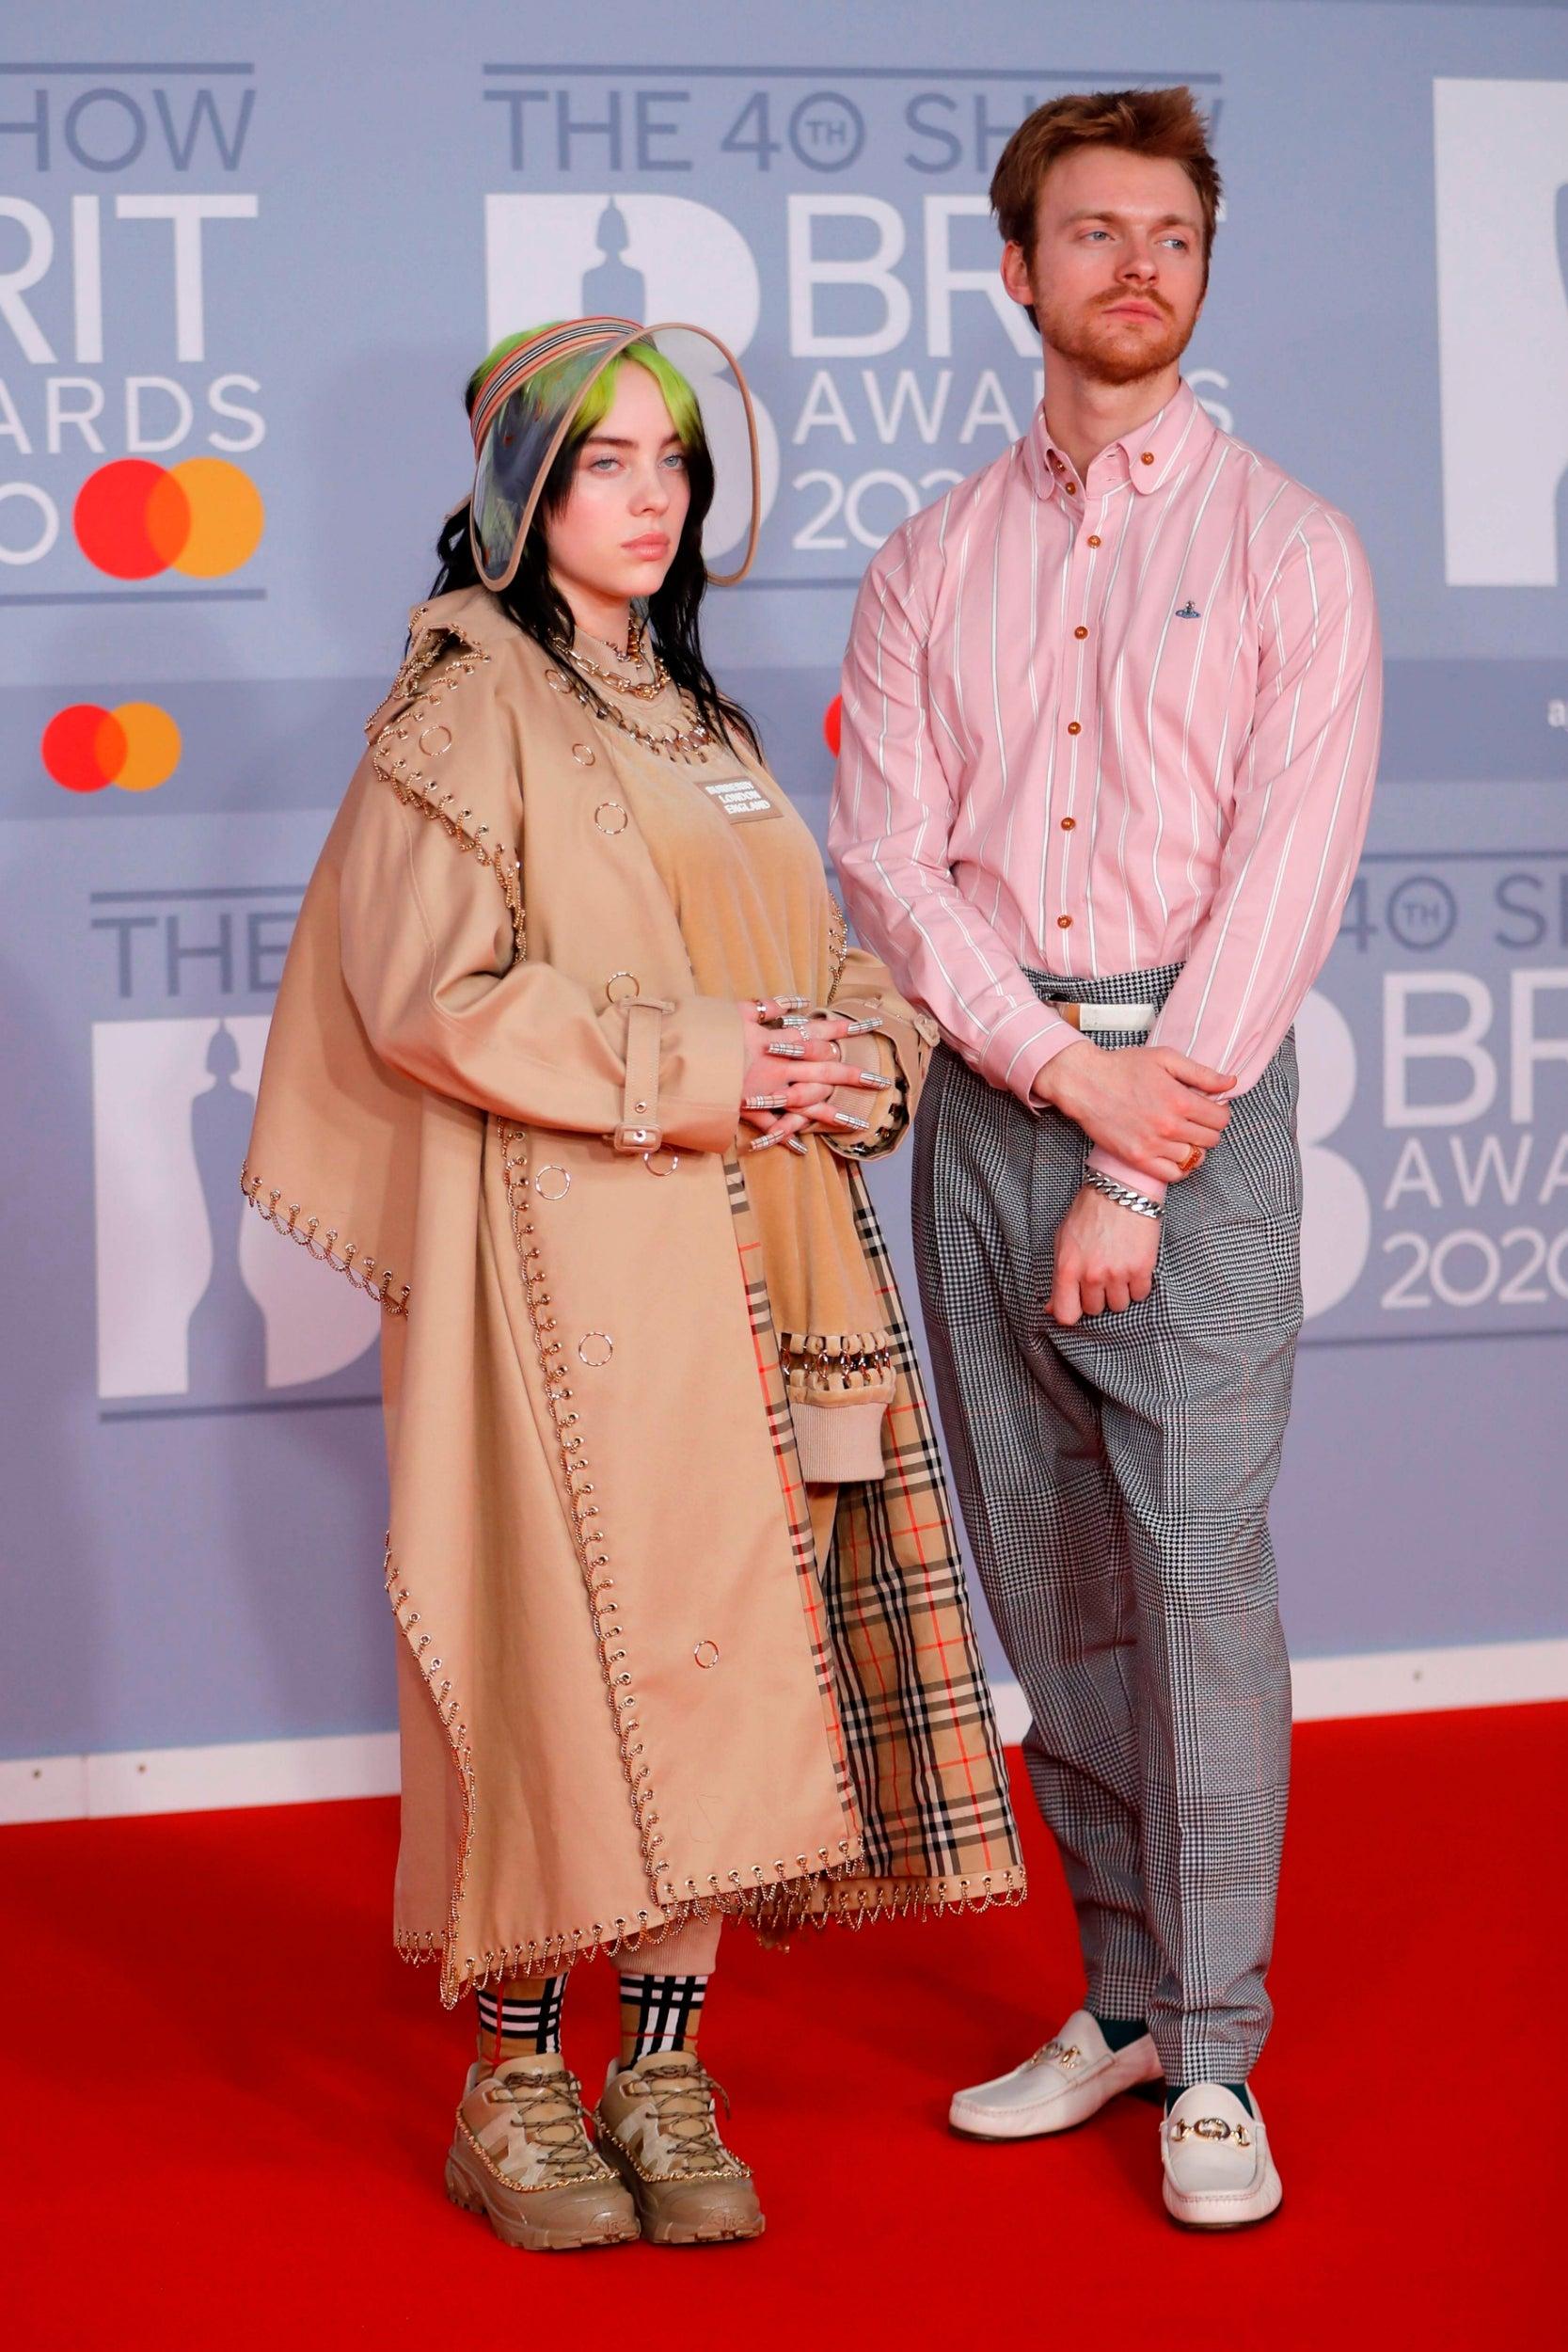 Billie Eilish and Finneas O'Connell